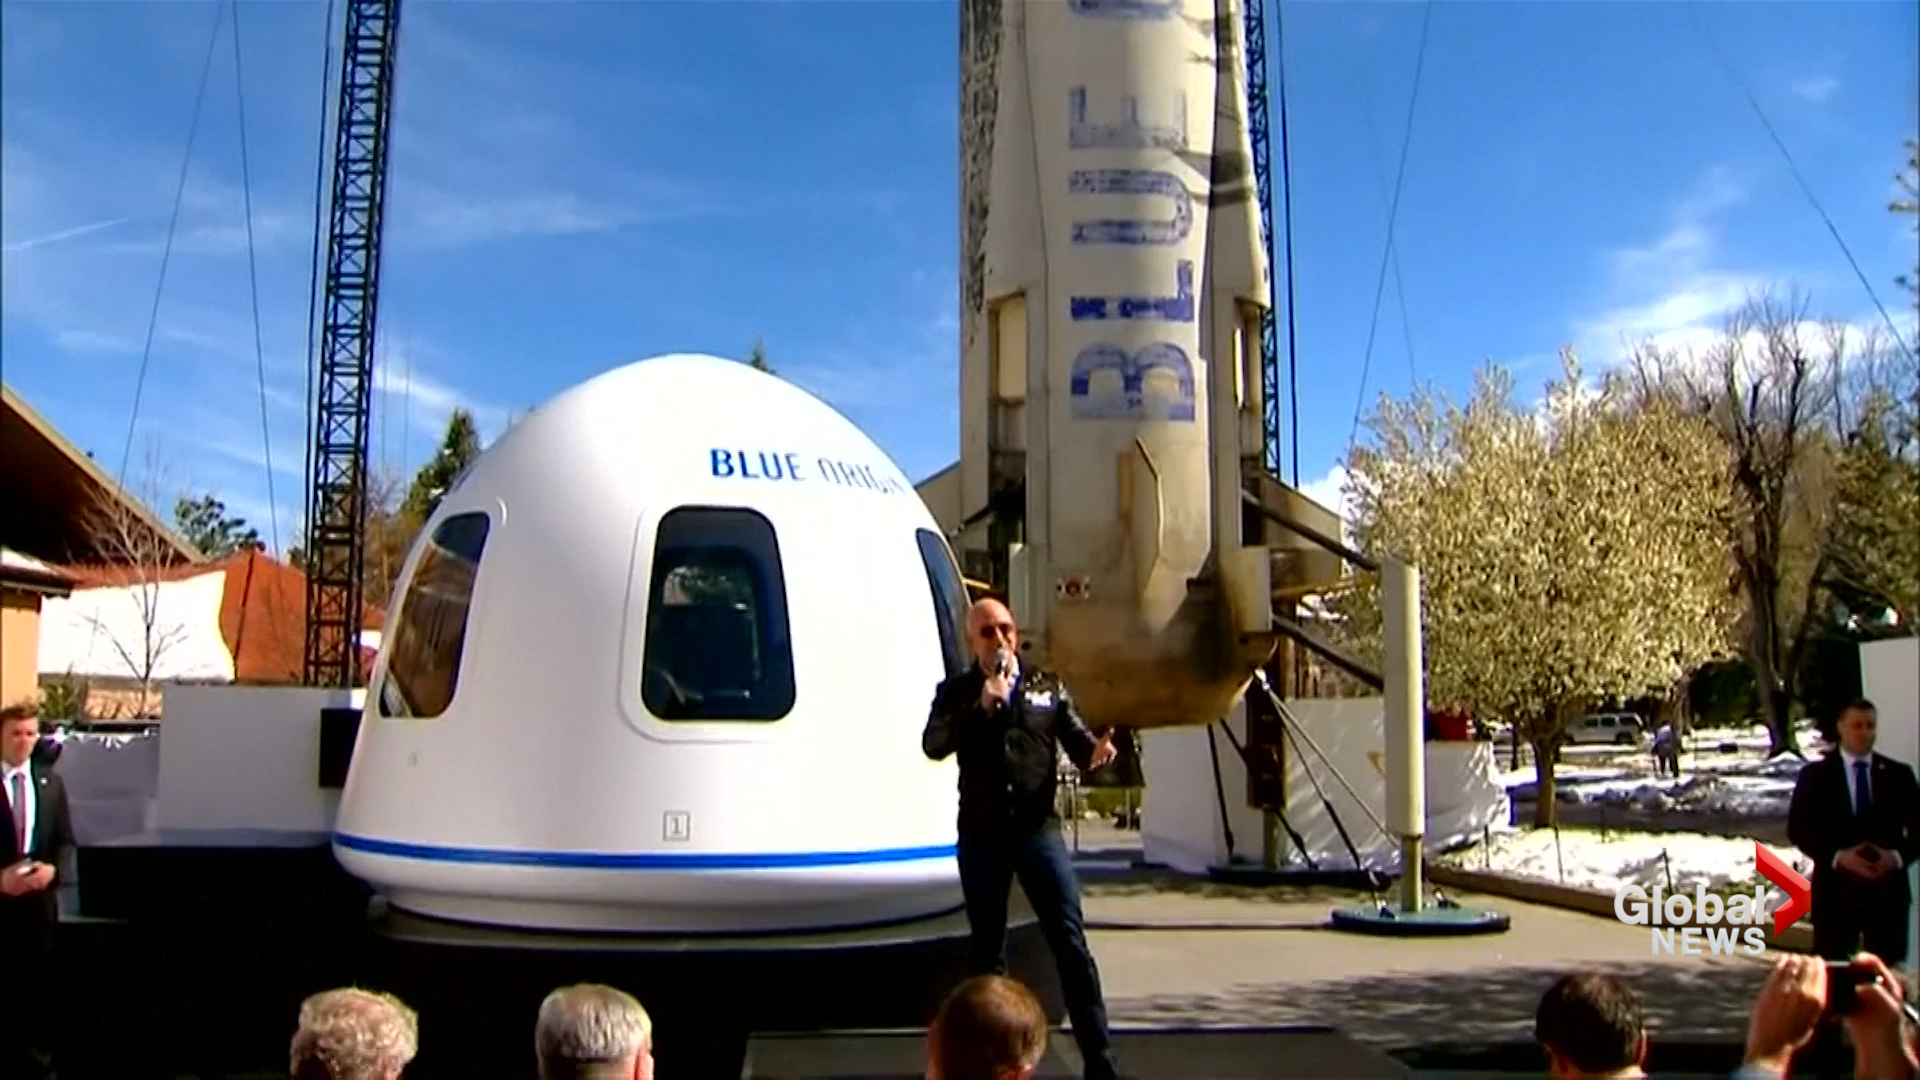 Jeff Bezos plans to charge at least $200,000 for space rides